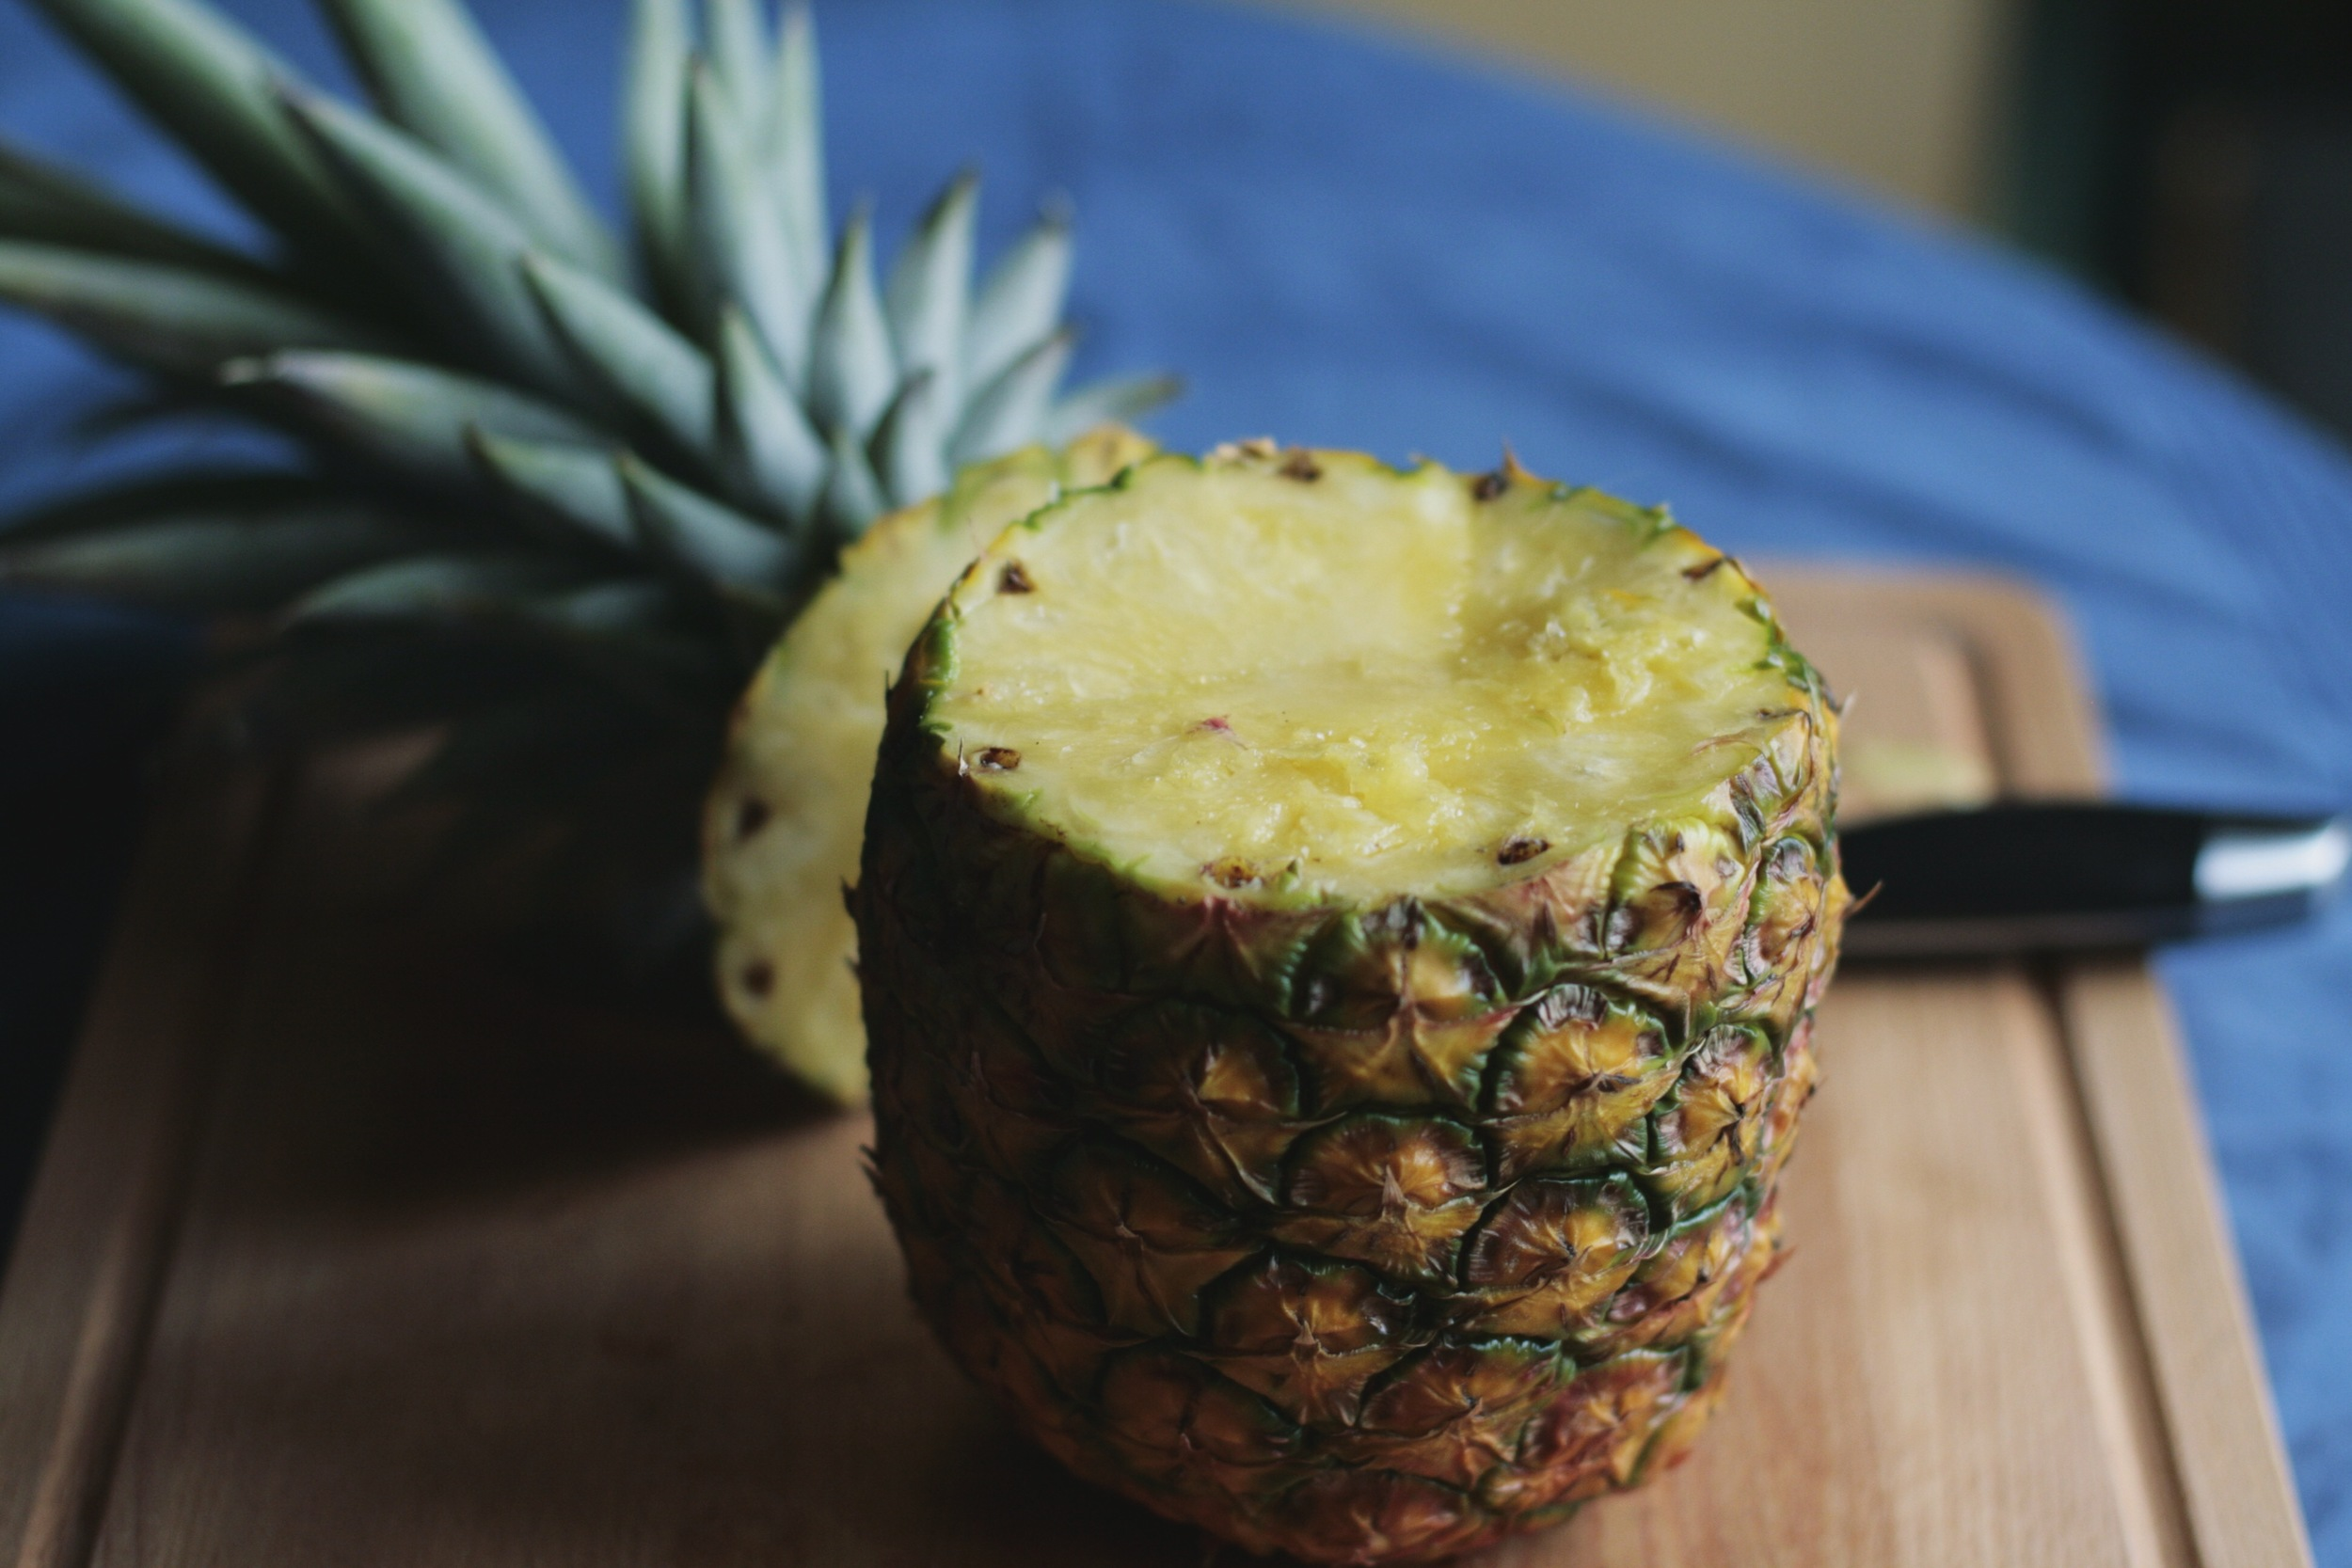 Preparing the pineapple